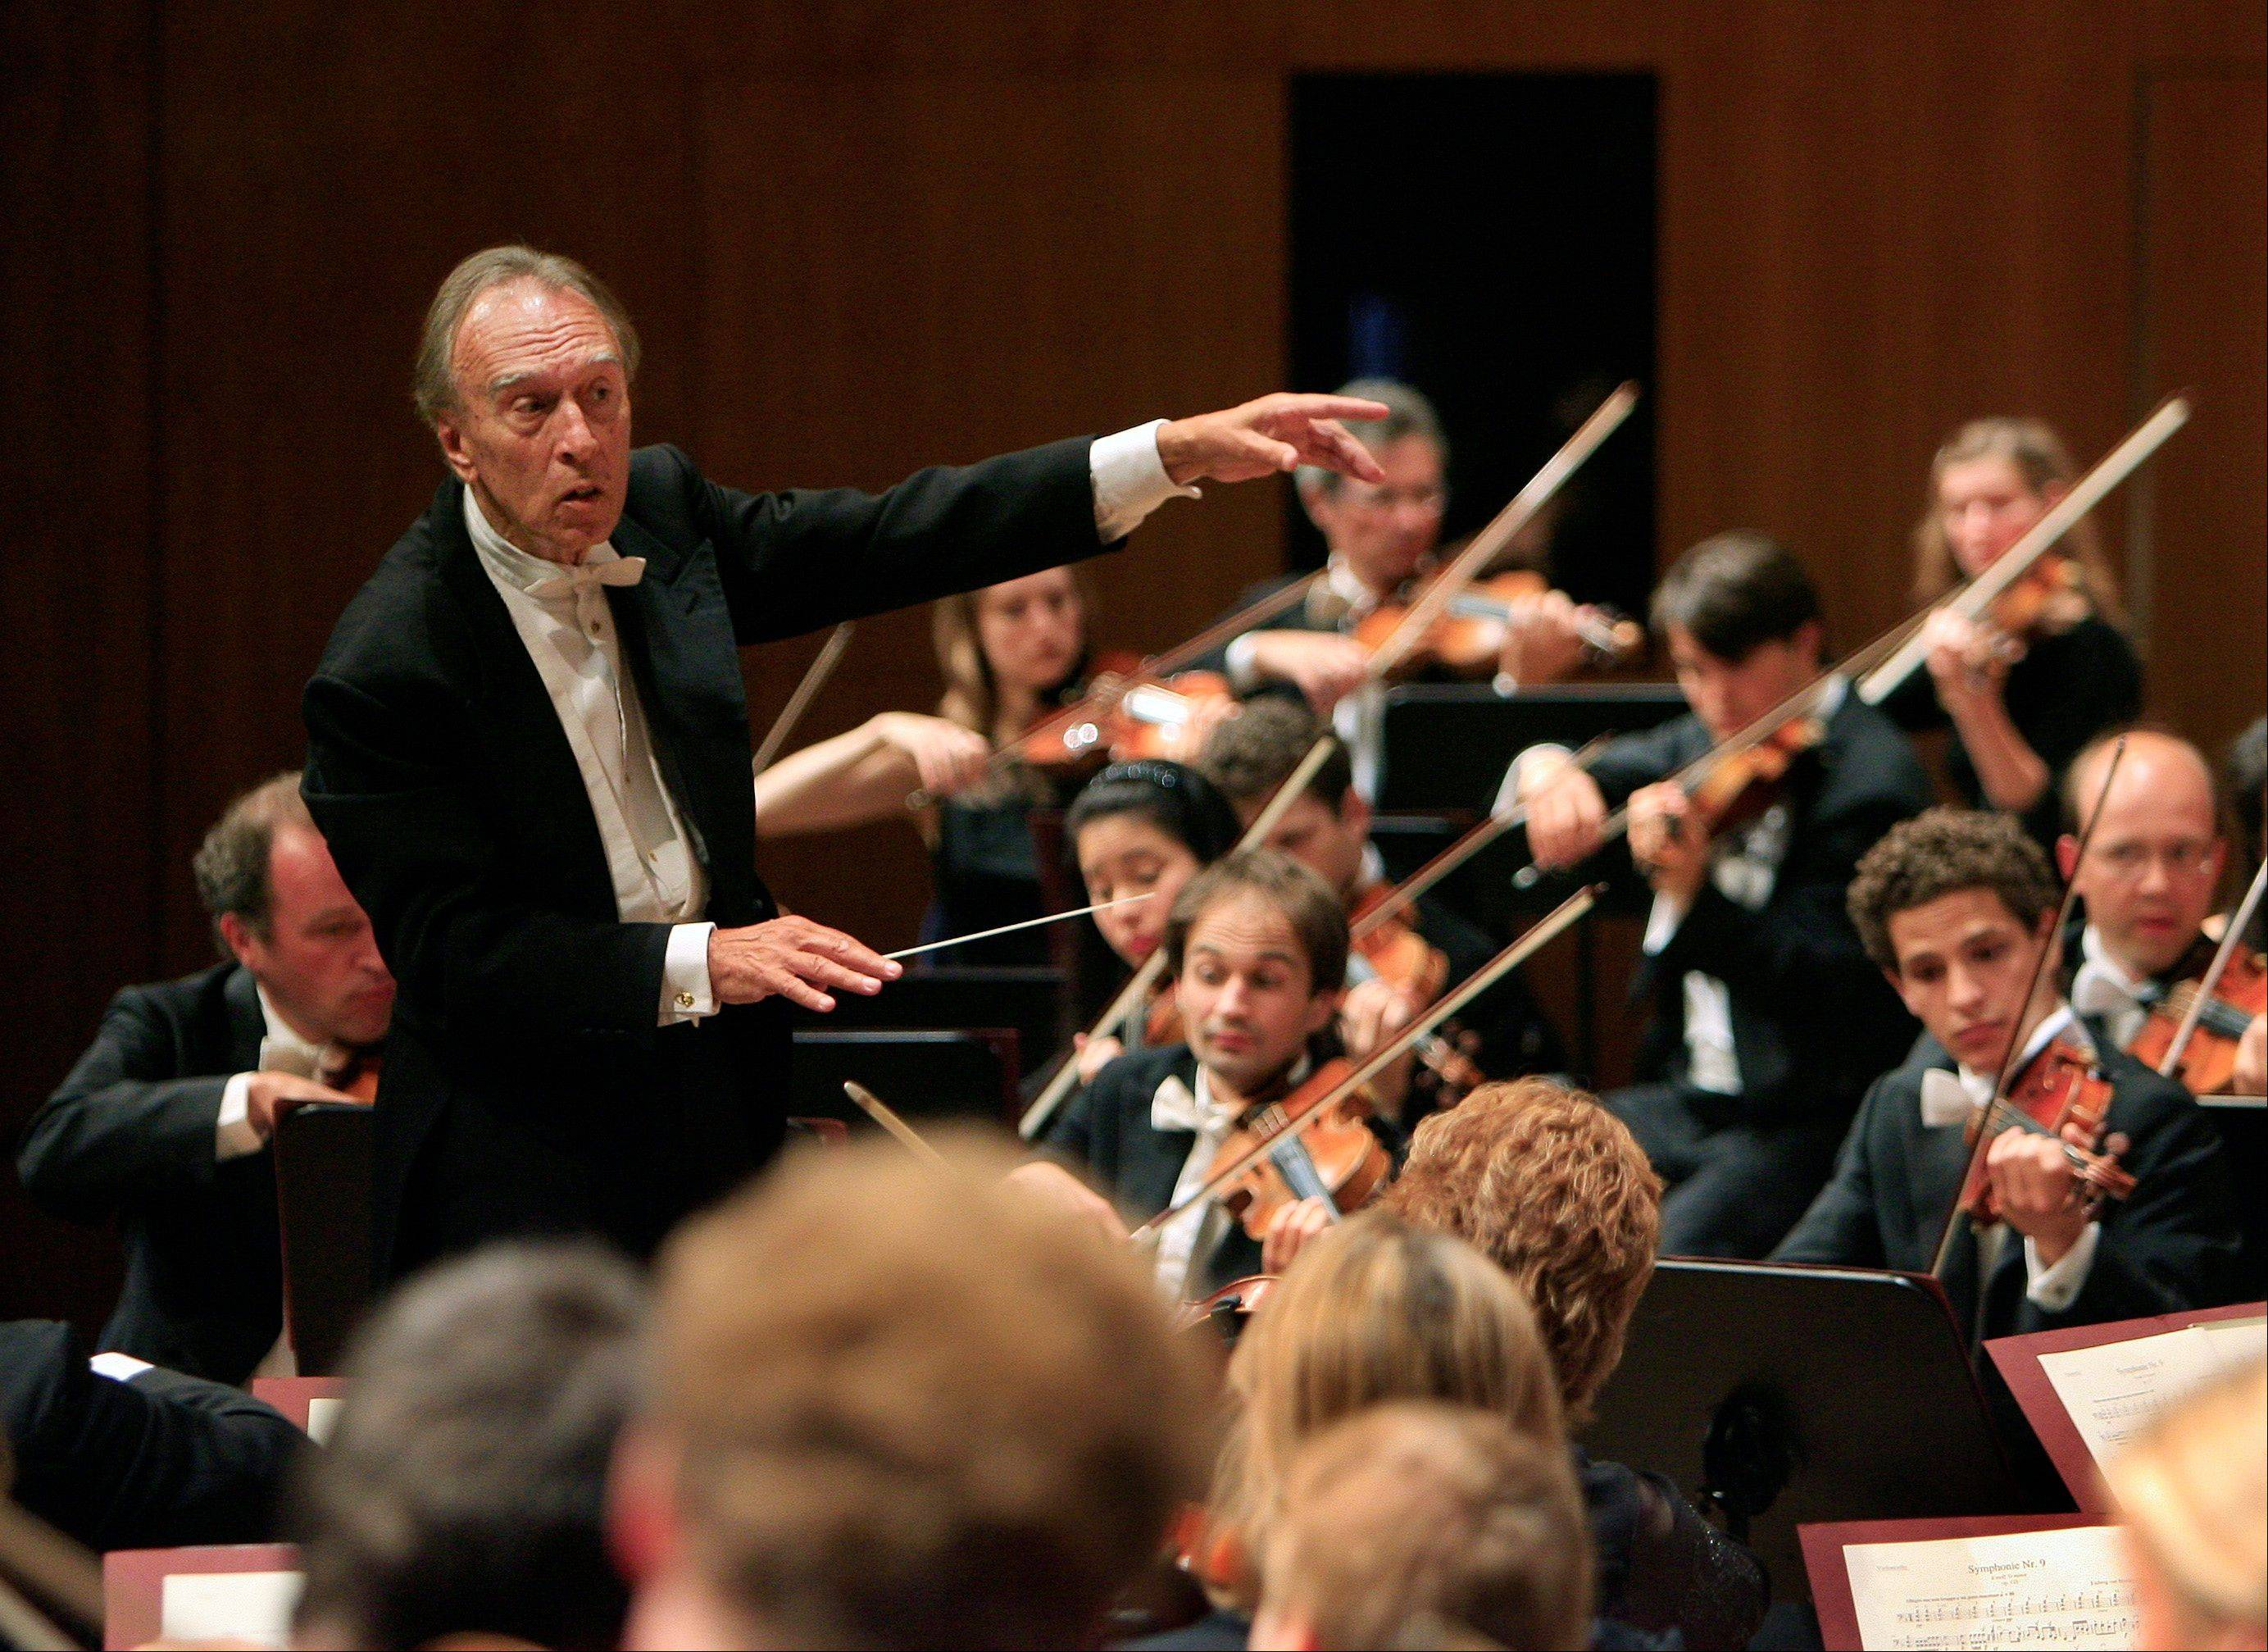 Claudio Abbado conducts his orchestra during the opening concert of the Lucerne Festival in Lucerne, Switzerland. Claudio Abbado, a star in the great generation of Italian conductors who was revered by musicians in the world's leading orchestras for developing a strong rapport with them while still allowing them their independence, died Monday at the age of 80.